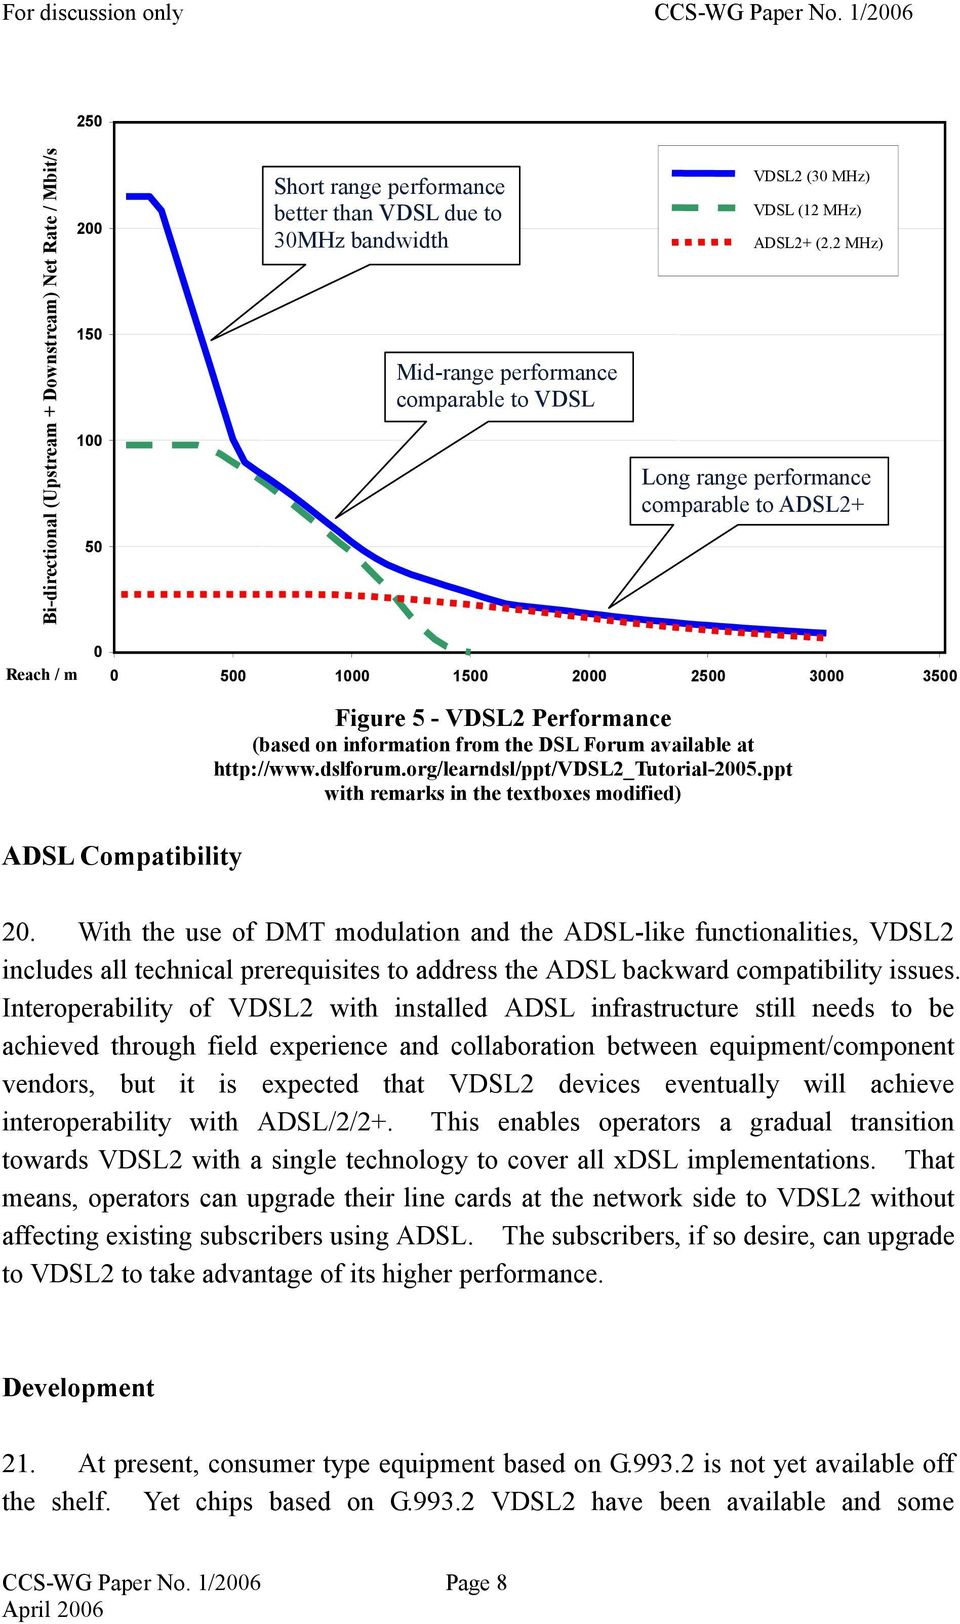 2 MHz) Long range performance comparable to ADSL2+ Reach / m 0 0 500 1000 1500 2000 2500 3000 3500 ADSL Compatibility Figure 5 - VDSL2 Performance (based on information from the DSL Forum available